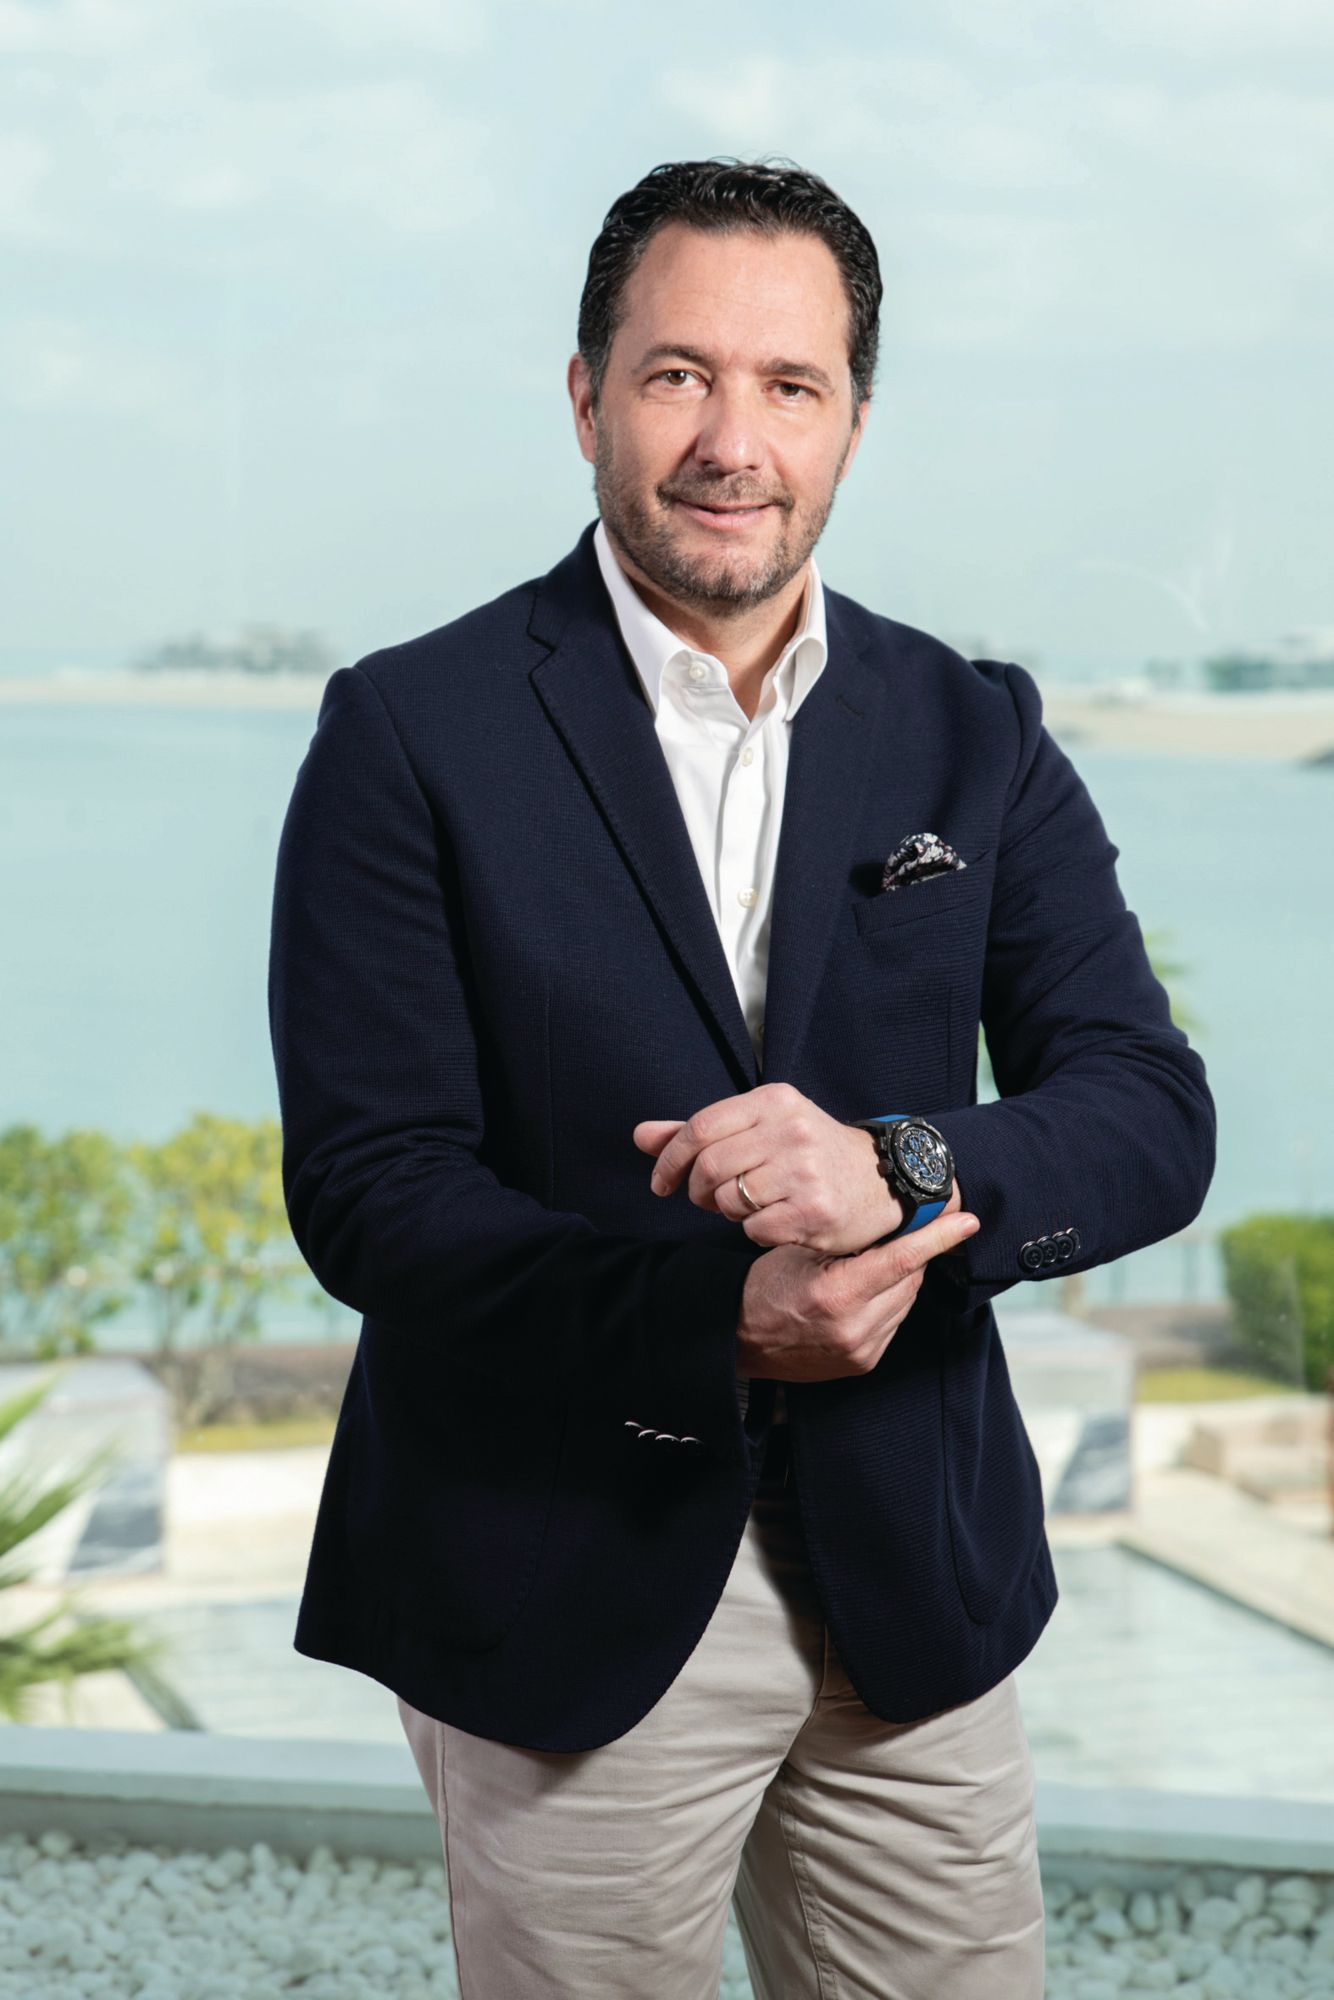 Zenith CEO Julien Tornare On Why He Wants to Offer More Women's Luxury Watches